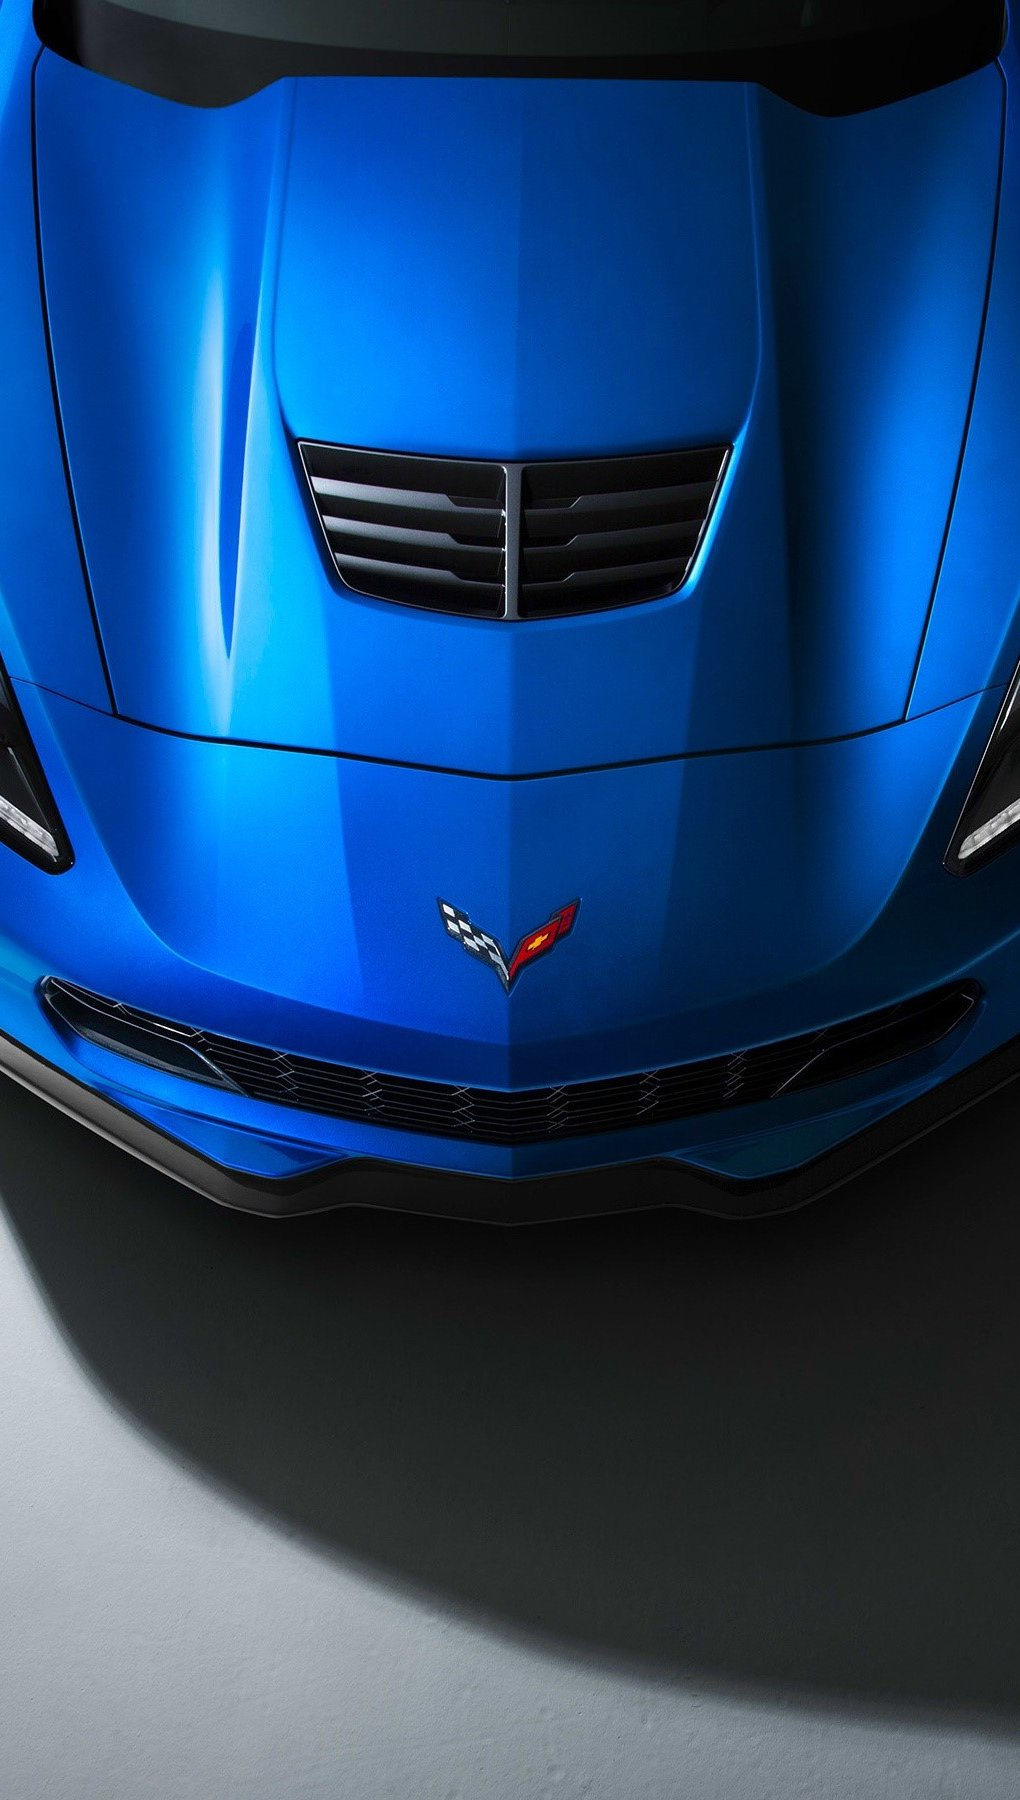 Wallpaper Corvette Z06 Supercar Vertical